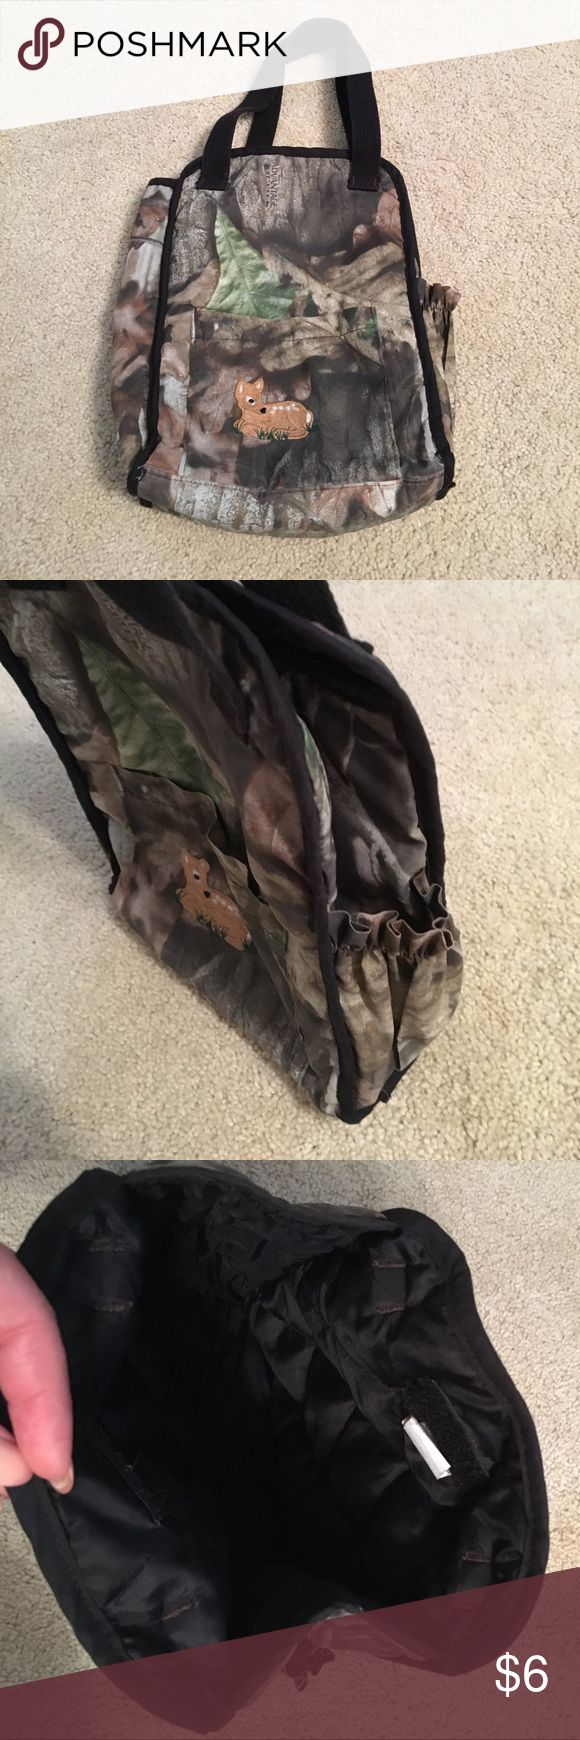 Little Deer Small Diaper Bag Small diaper bag, great for those quick trips to the store or for dad to take with him.  Camouflage with little deer embroidery, side pocket for bottle. 9in W x 11in H. Bags Baby Bags